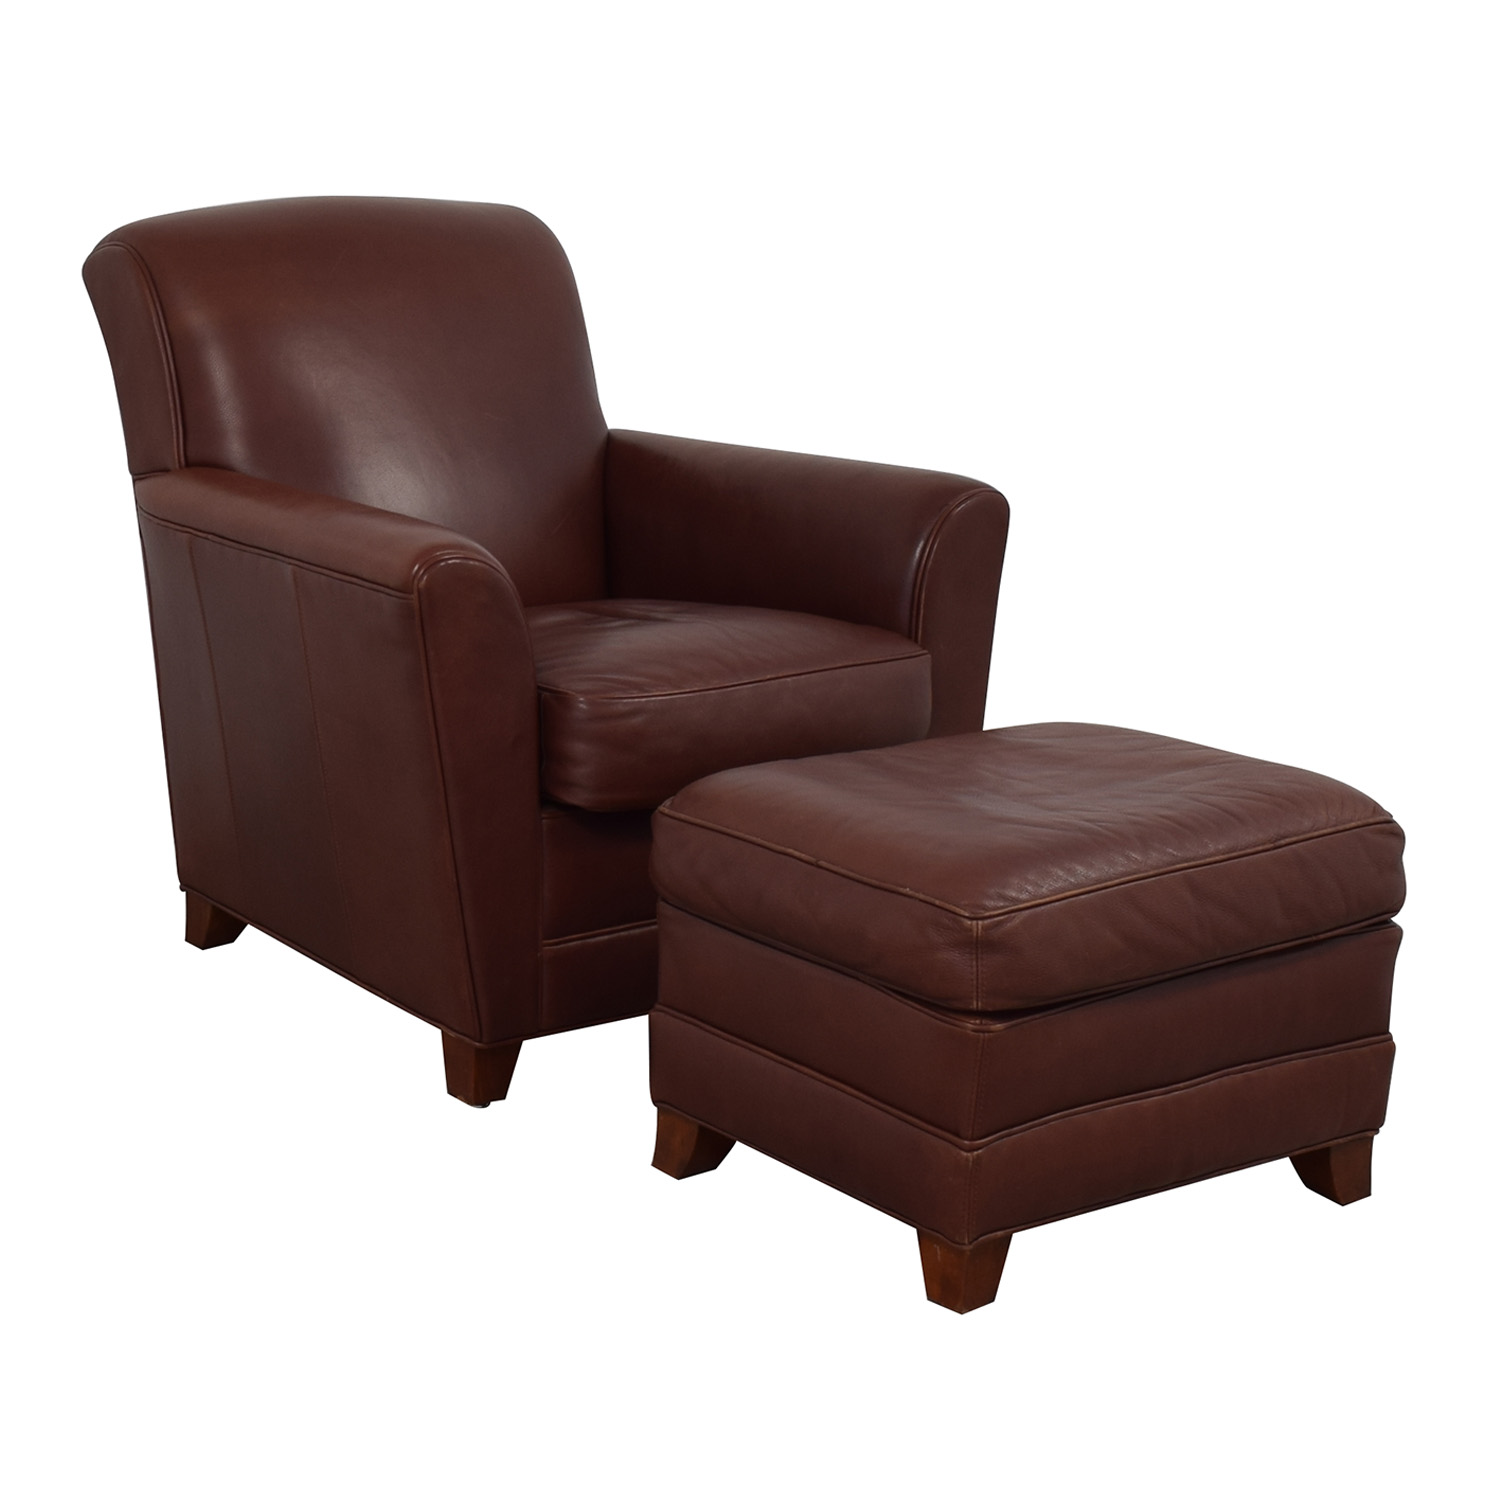 Stickley Furniture Stickley Furniture Leather Club Chair and Ottoman nyc